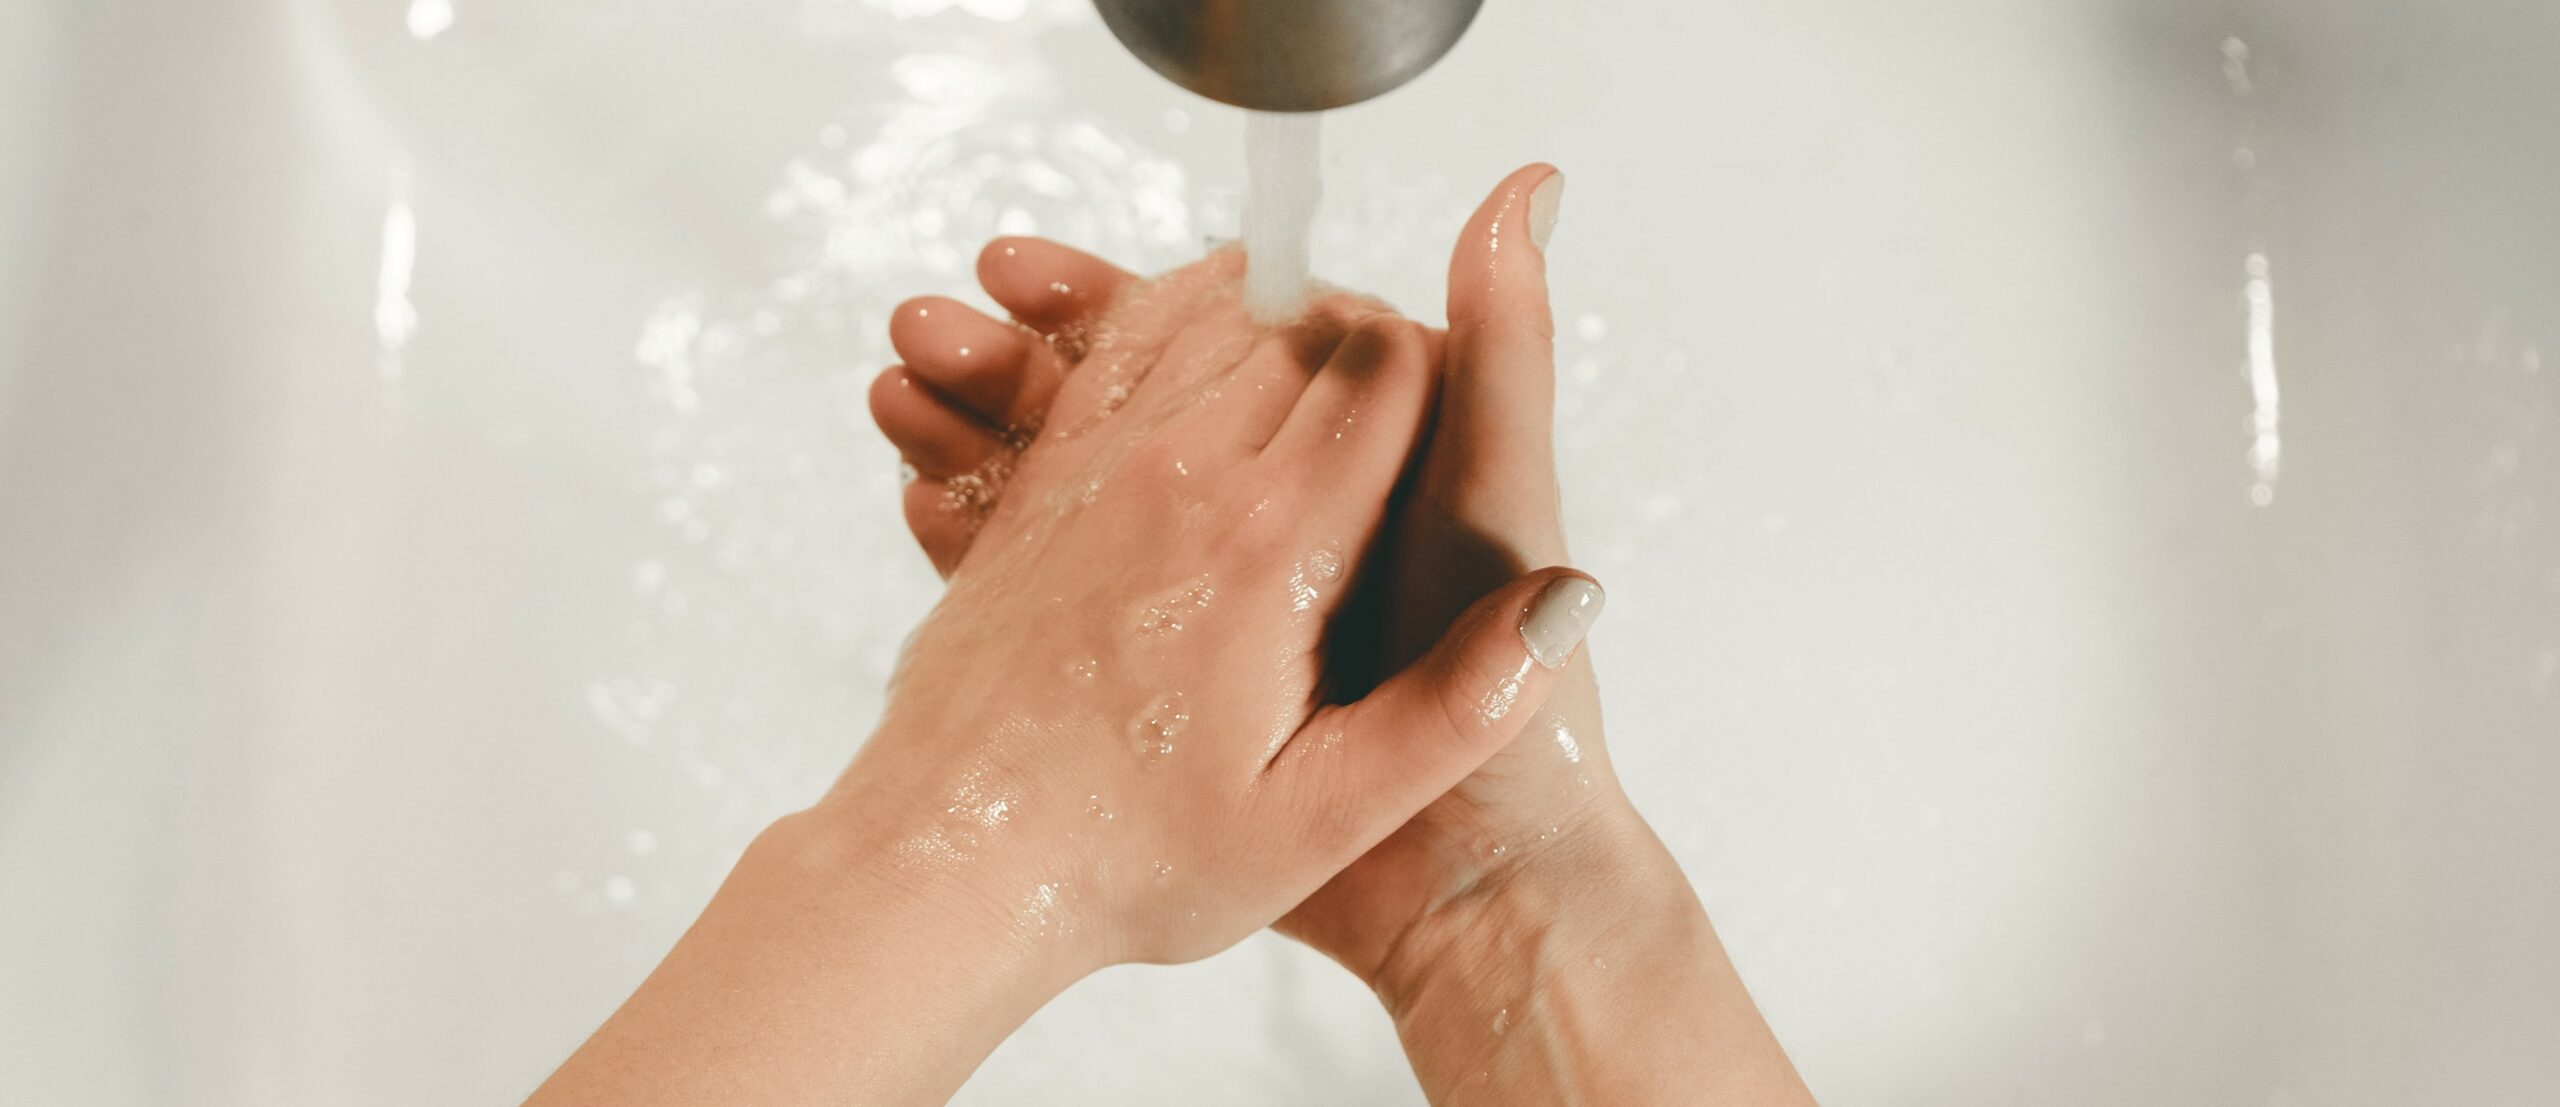 hand washing with water